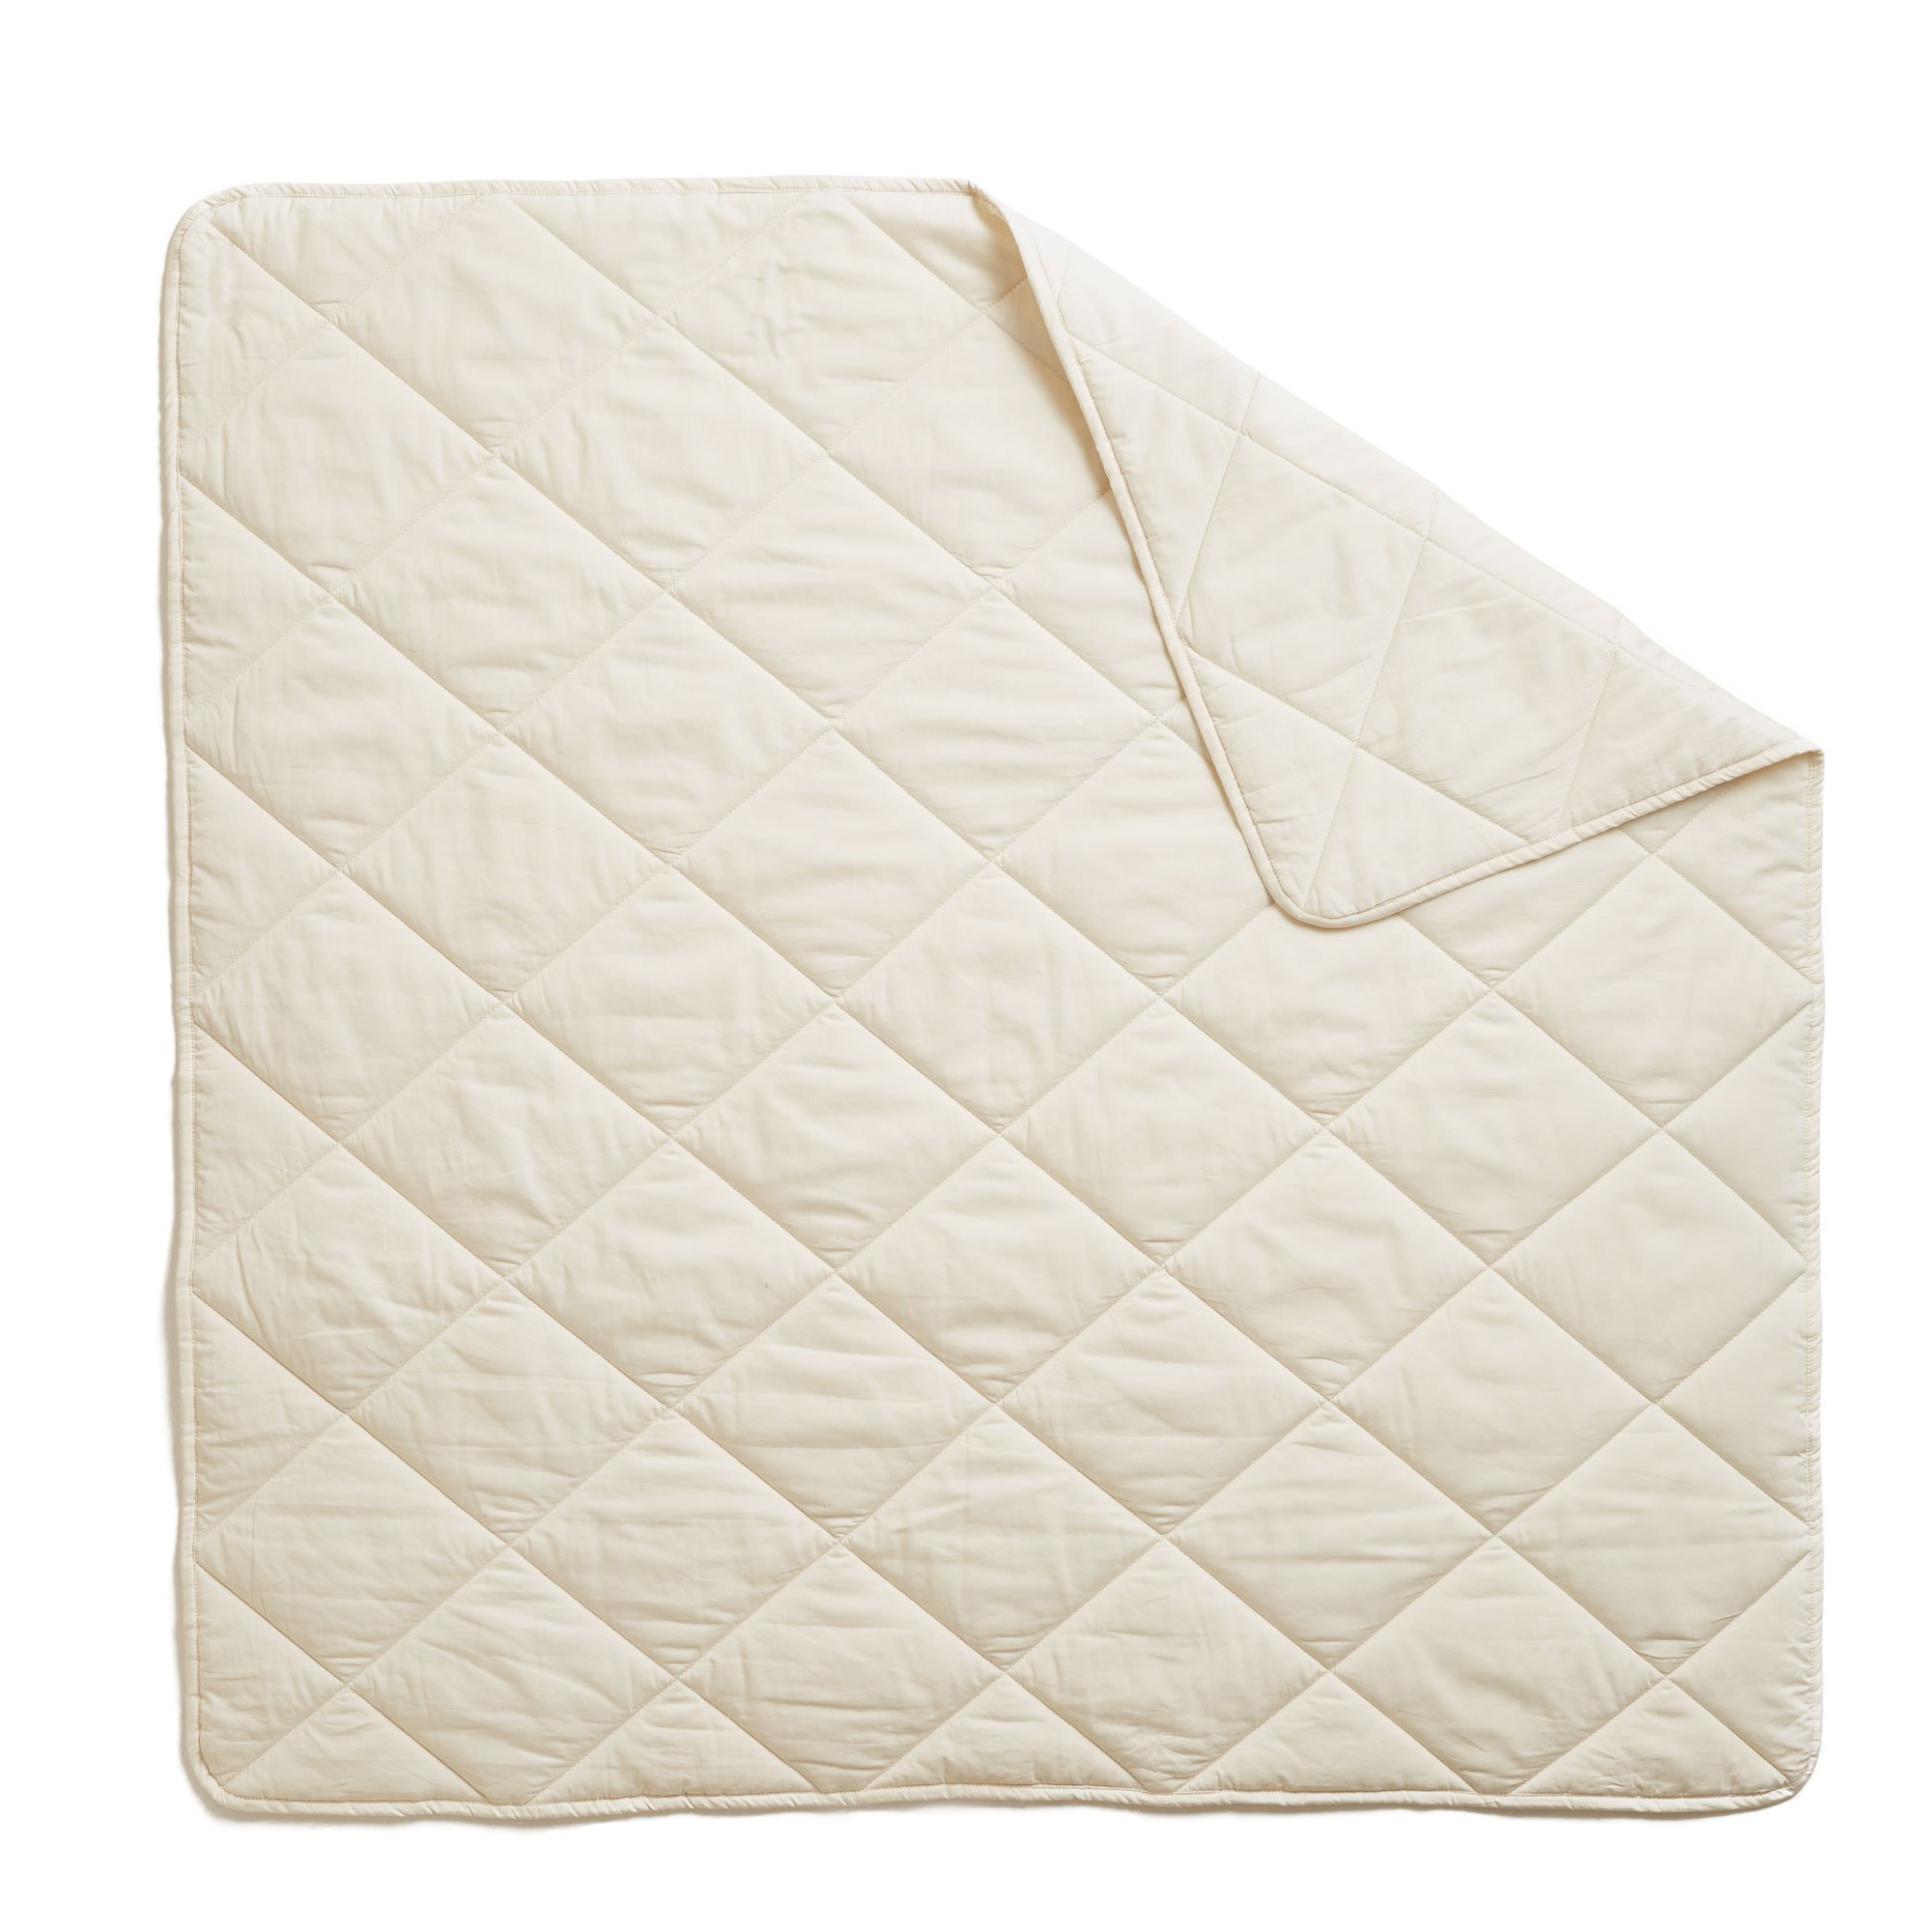 Brooklyn Born Organic Quilt - All Natural, Ivory, One Size by Brooklyn Born (Image #2)